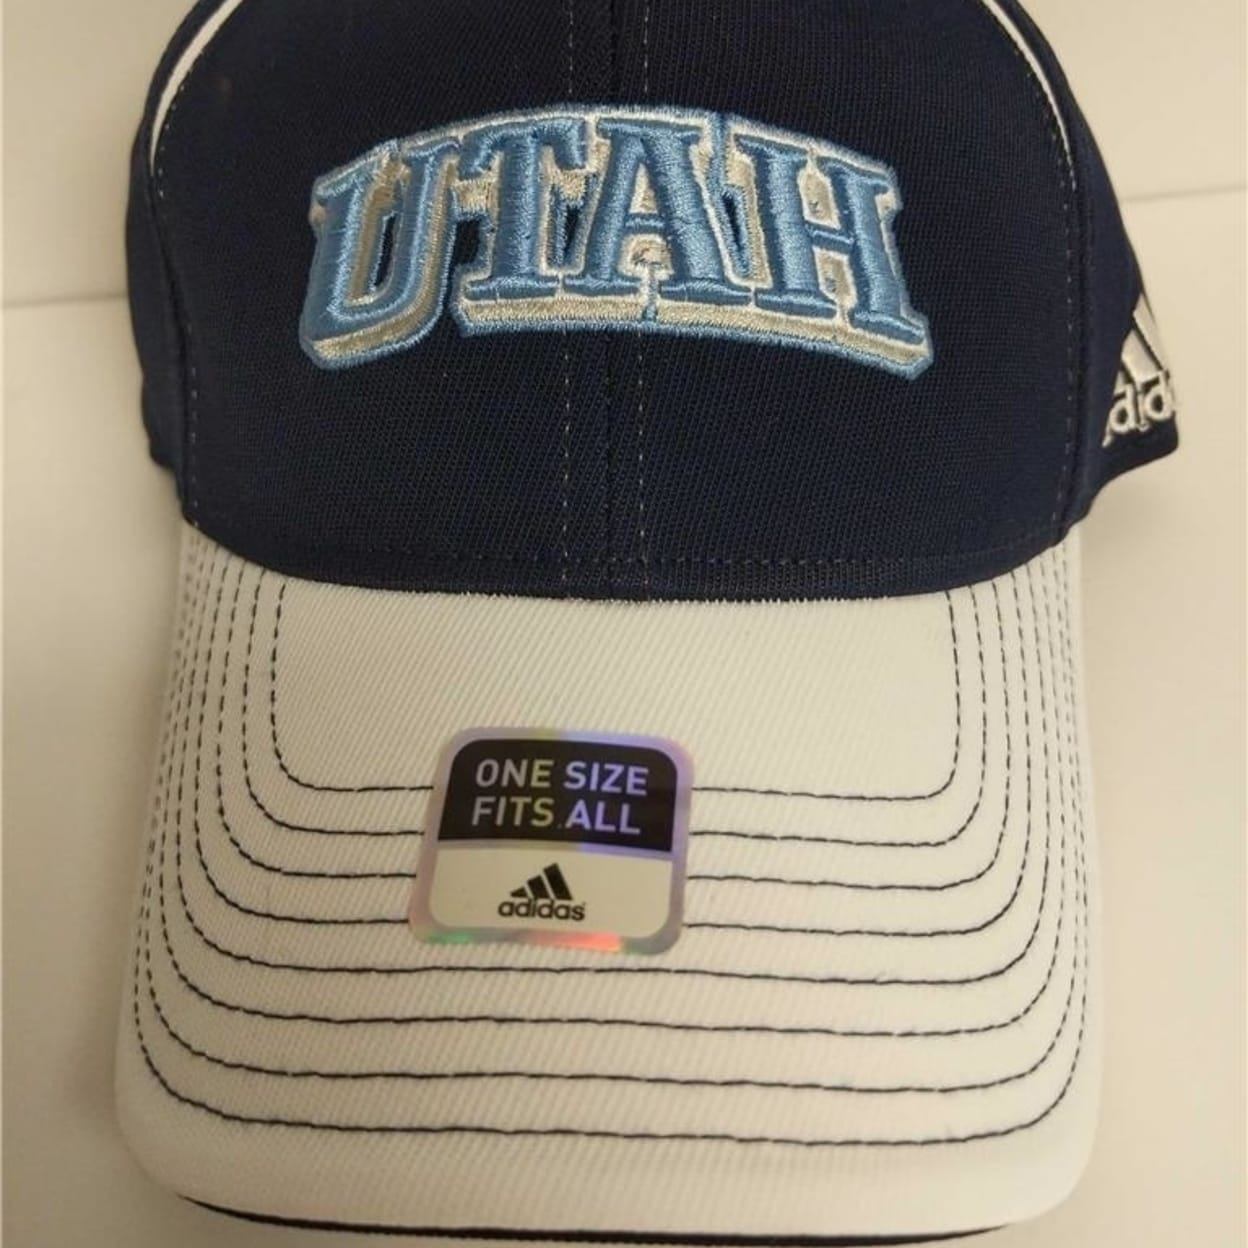 Shop Utah Jazz Adidas Flex Fit Adult Size Osfa Stretch Fit Hat Cap  22 -  Free Shipping On Orders Over  45 - Overstock.com - 23068455 abc407e22e6